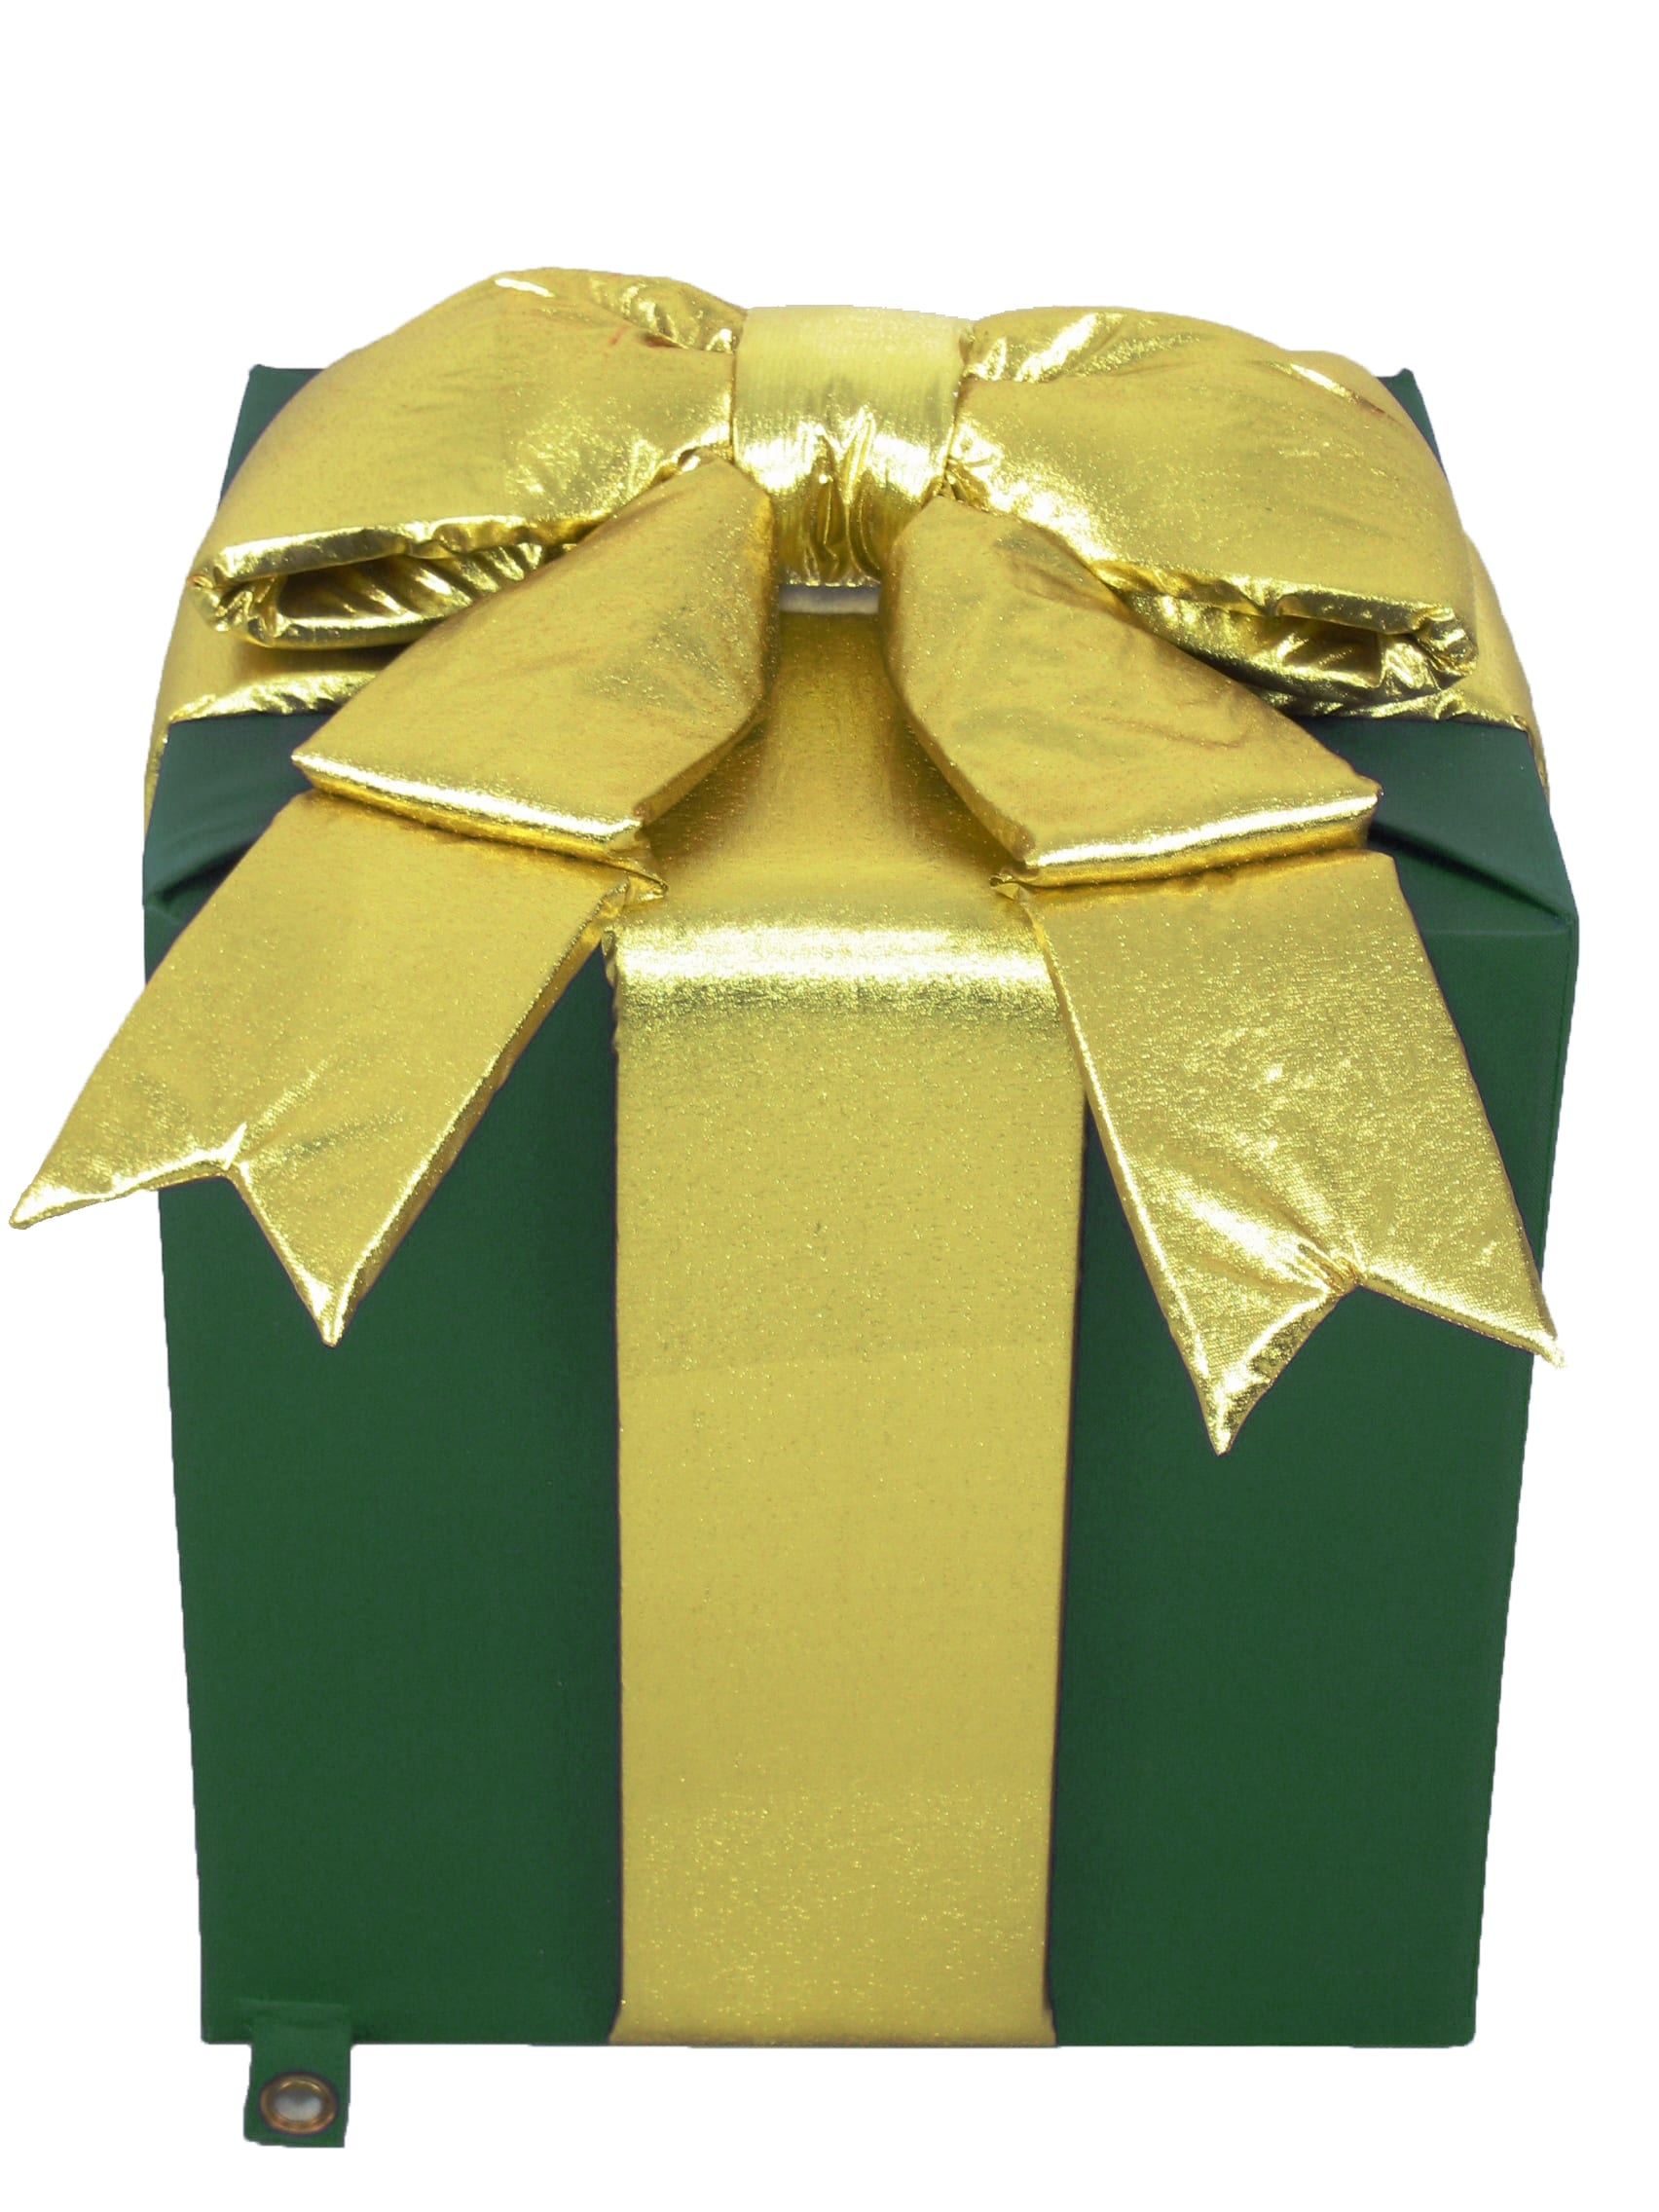 Christmas at Winterland WL-GIFT-32-GR Green / Gold Gift Boxes 32 Inch Fabric Giant Green Gift Box with Gold Bow Indoor / Outdoor WL-GIFT-32-GR